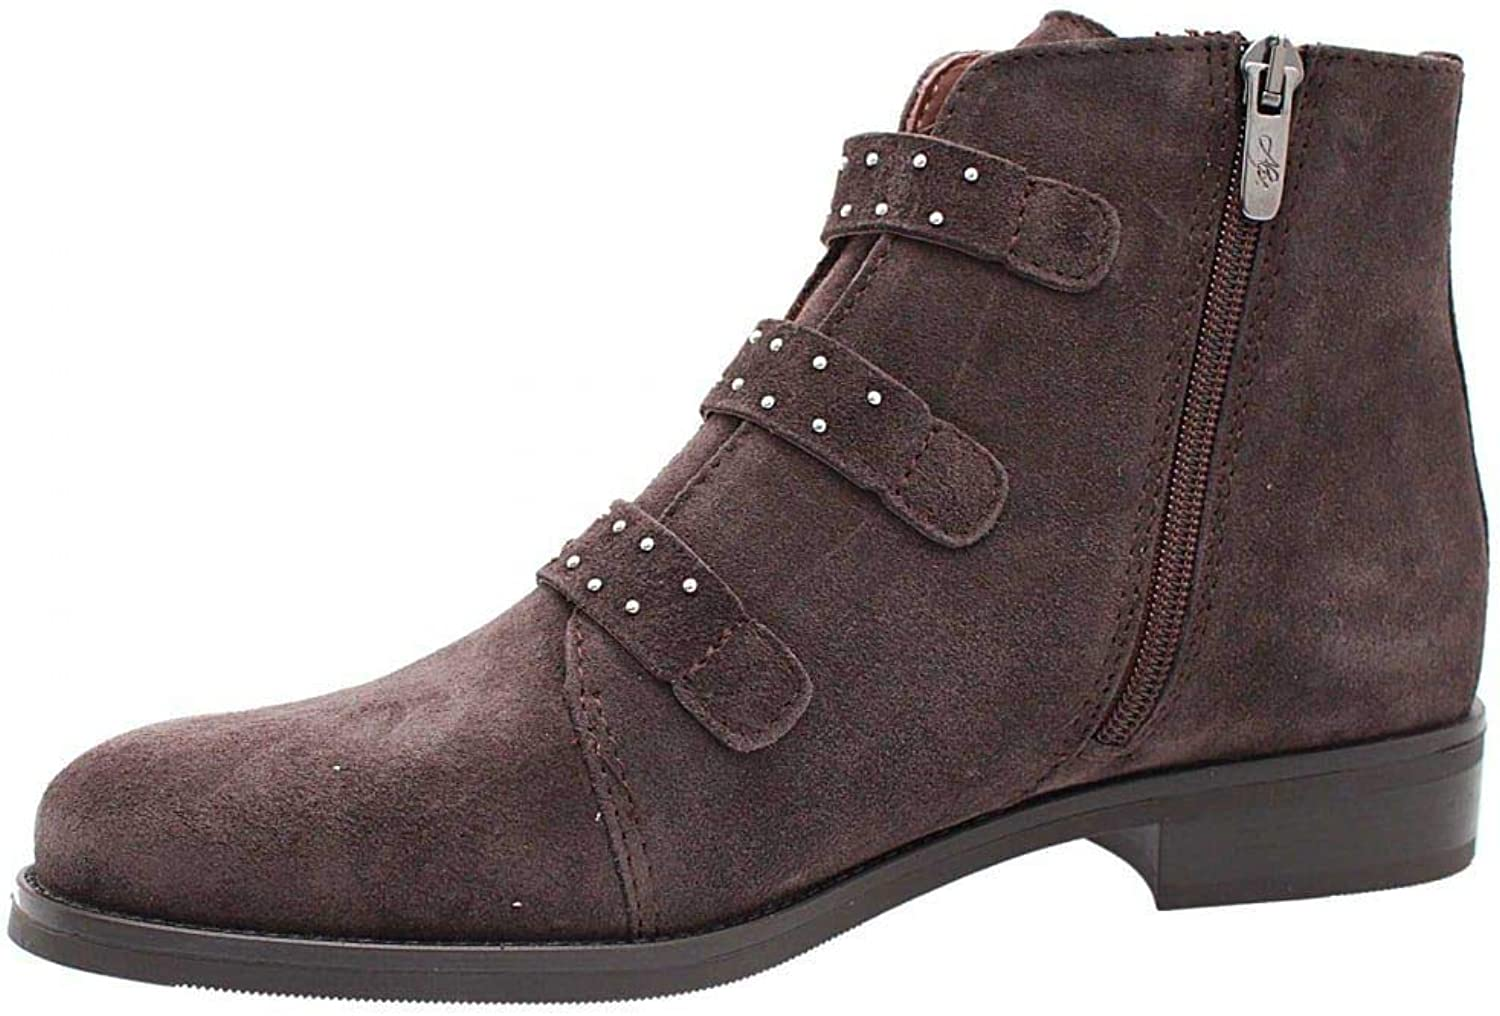 ALPE Suede Ankle Stiefel with Buckle Detail